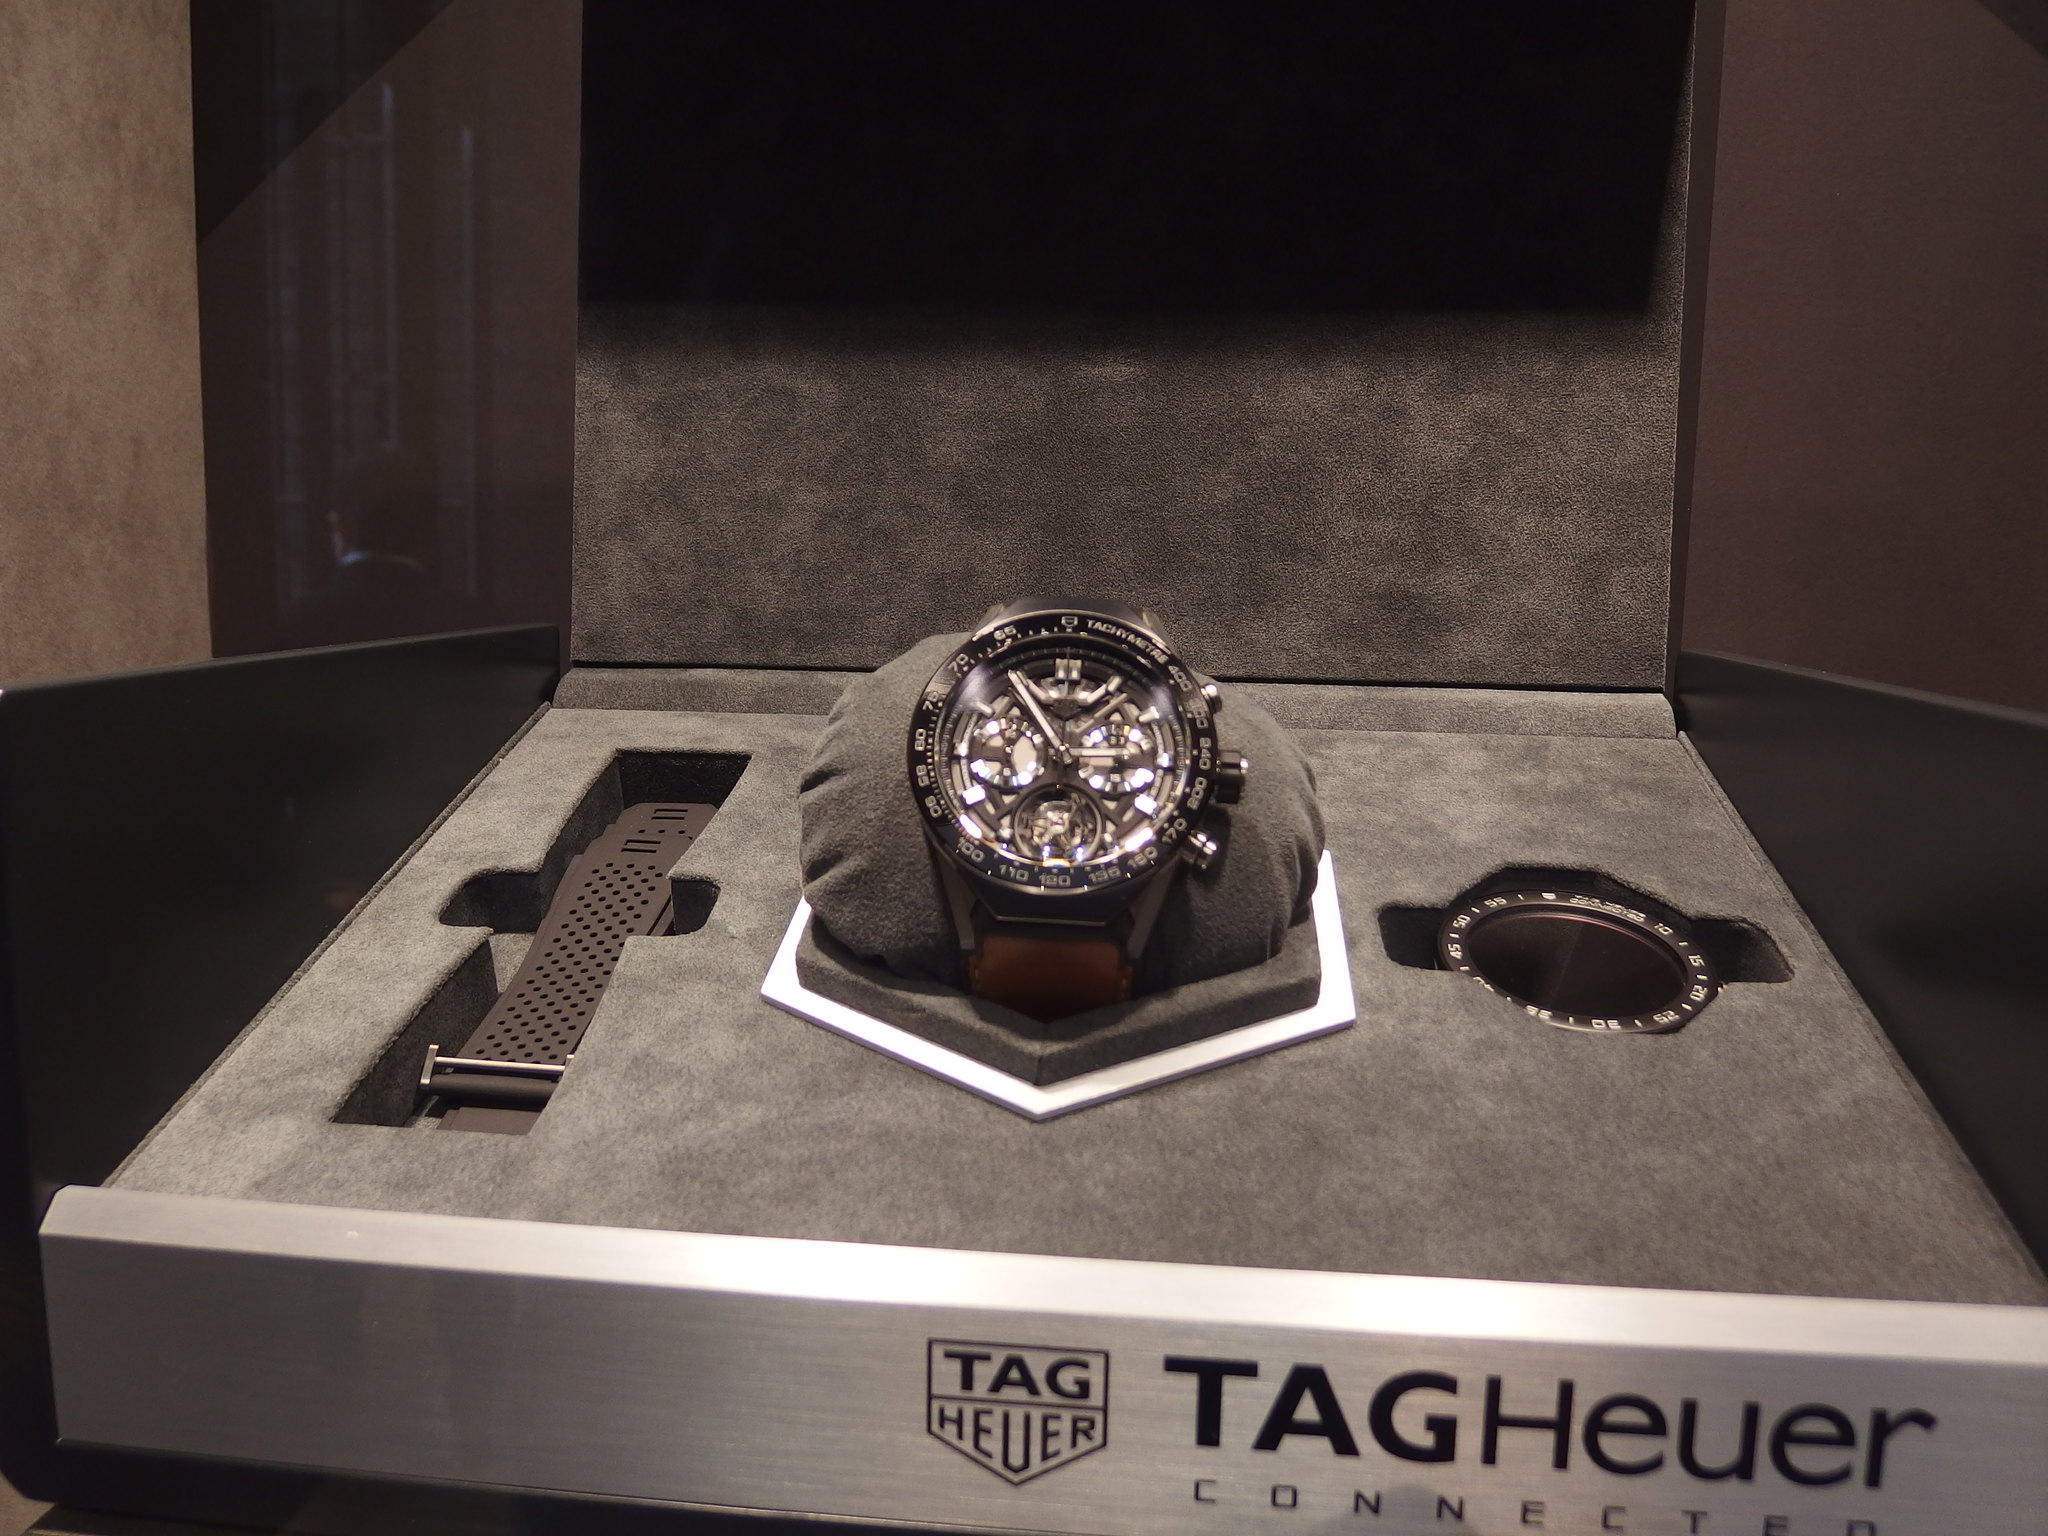 Tag Heuer exhibition, Tag Heuer exhibition Paris